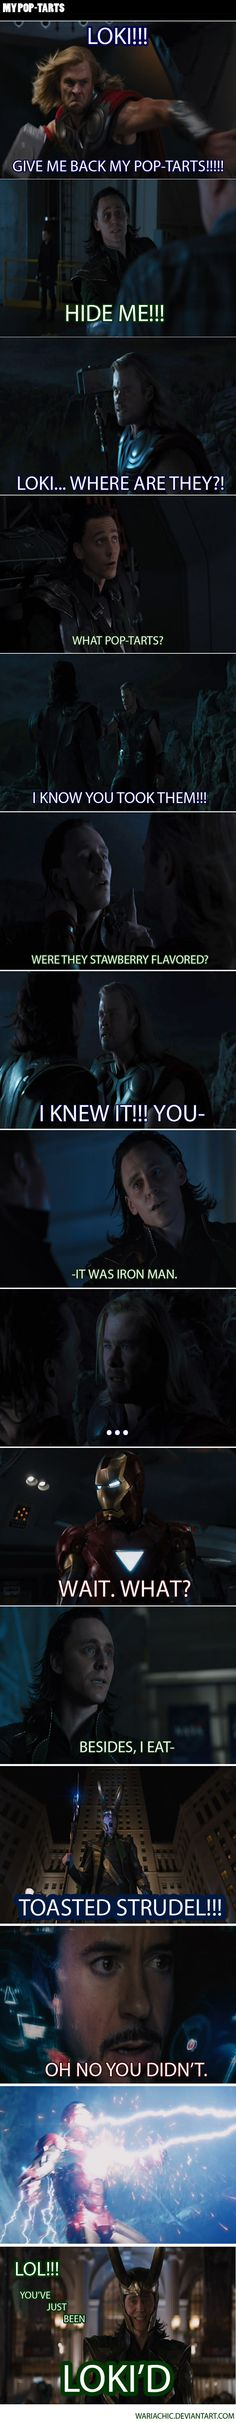 Loki'd!! THIS IS AWESOME!